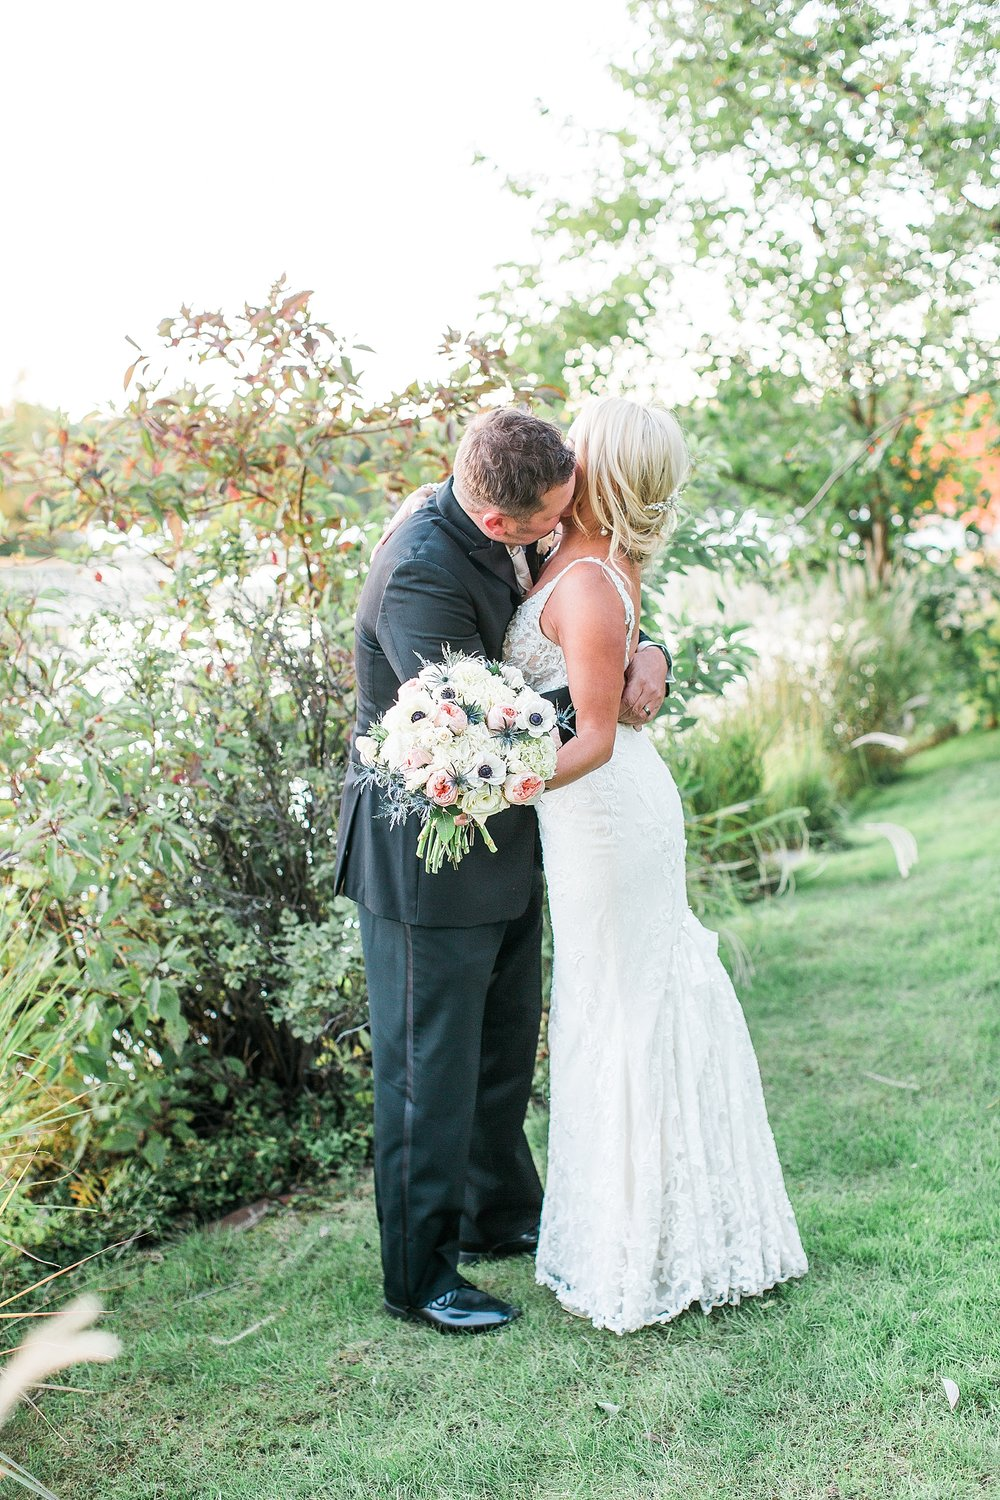 Bride and groom sunset golden hour portrait embrace at the Chart House Summer Wedding Lakeville Minnesota Minneapolis Wedding Photographer Mallory Kiesow